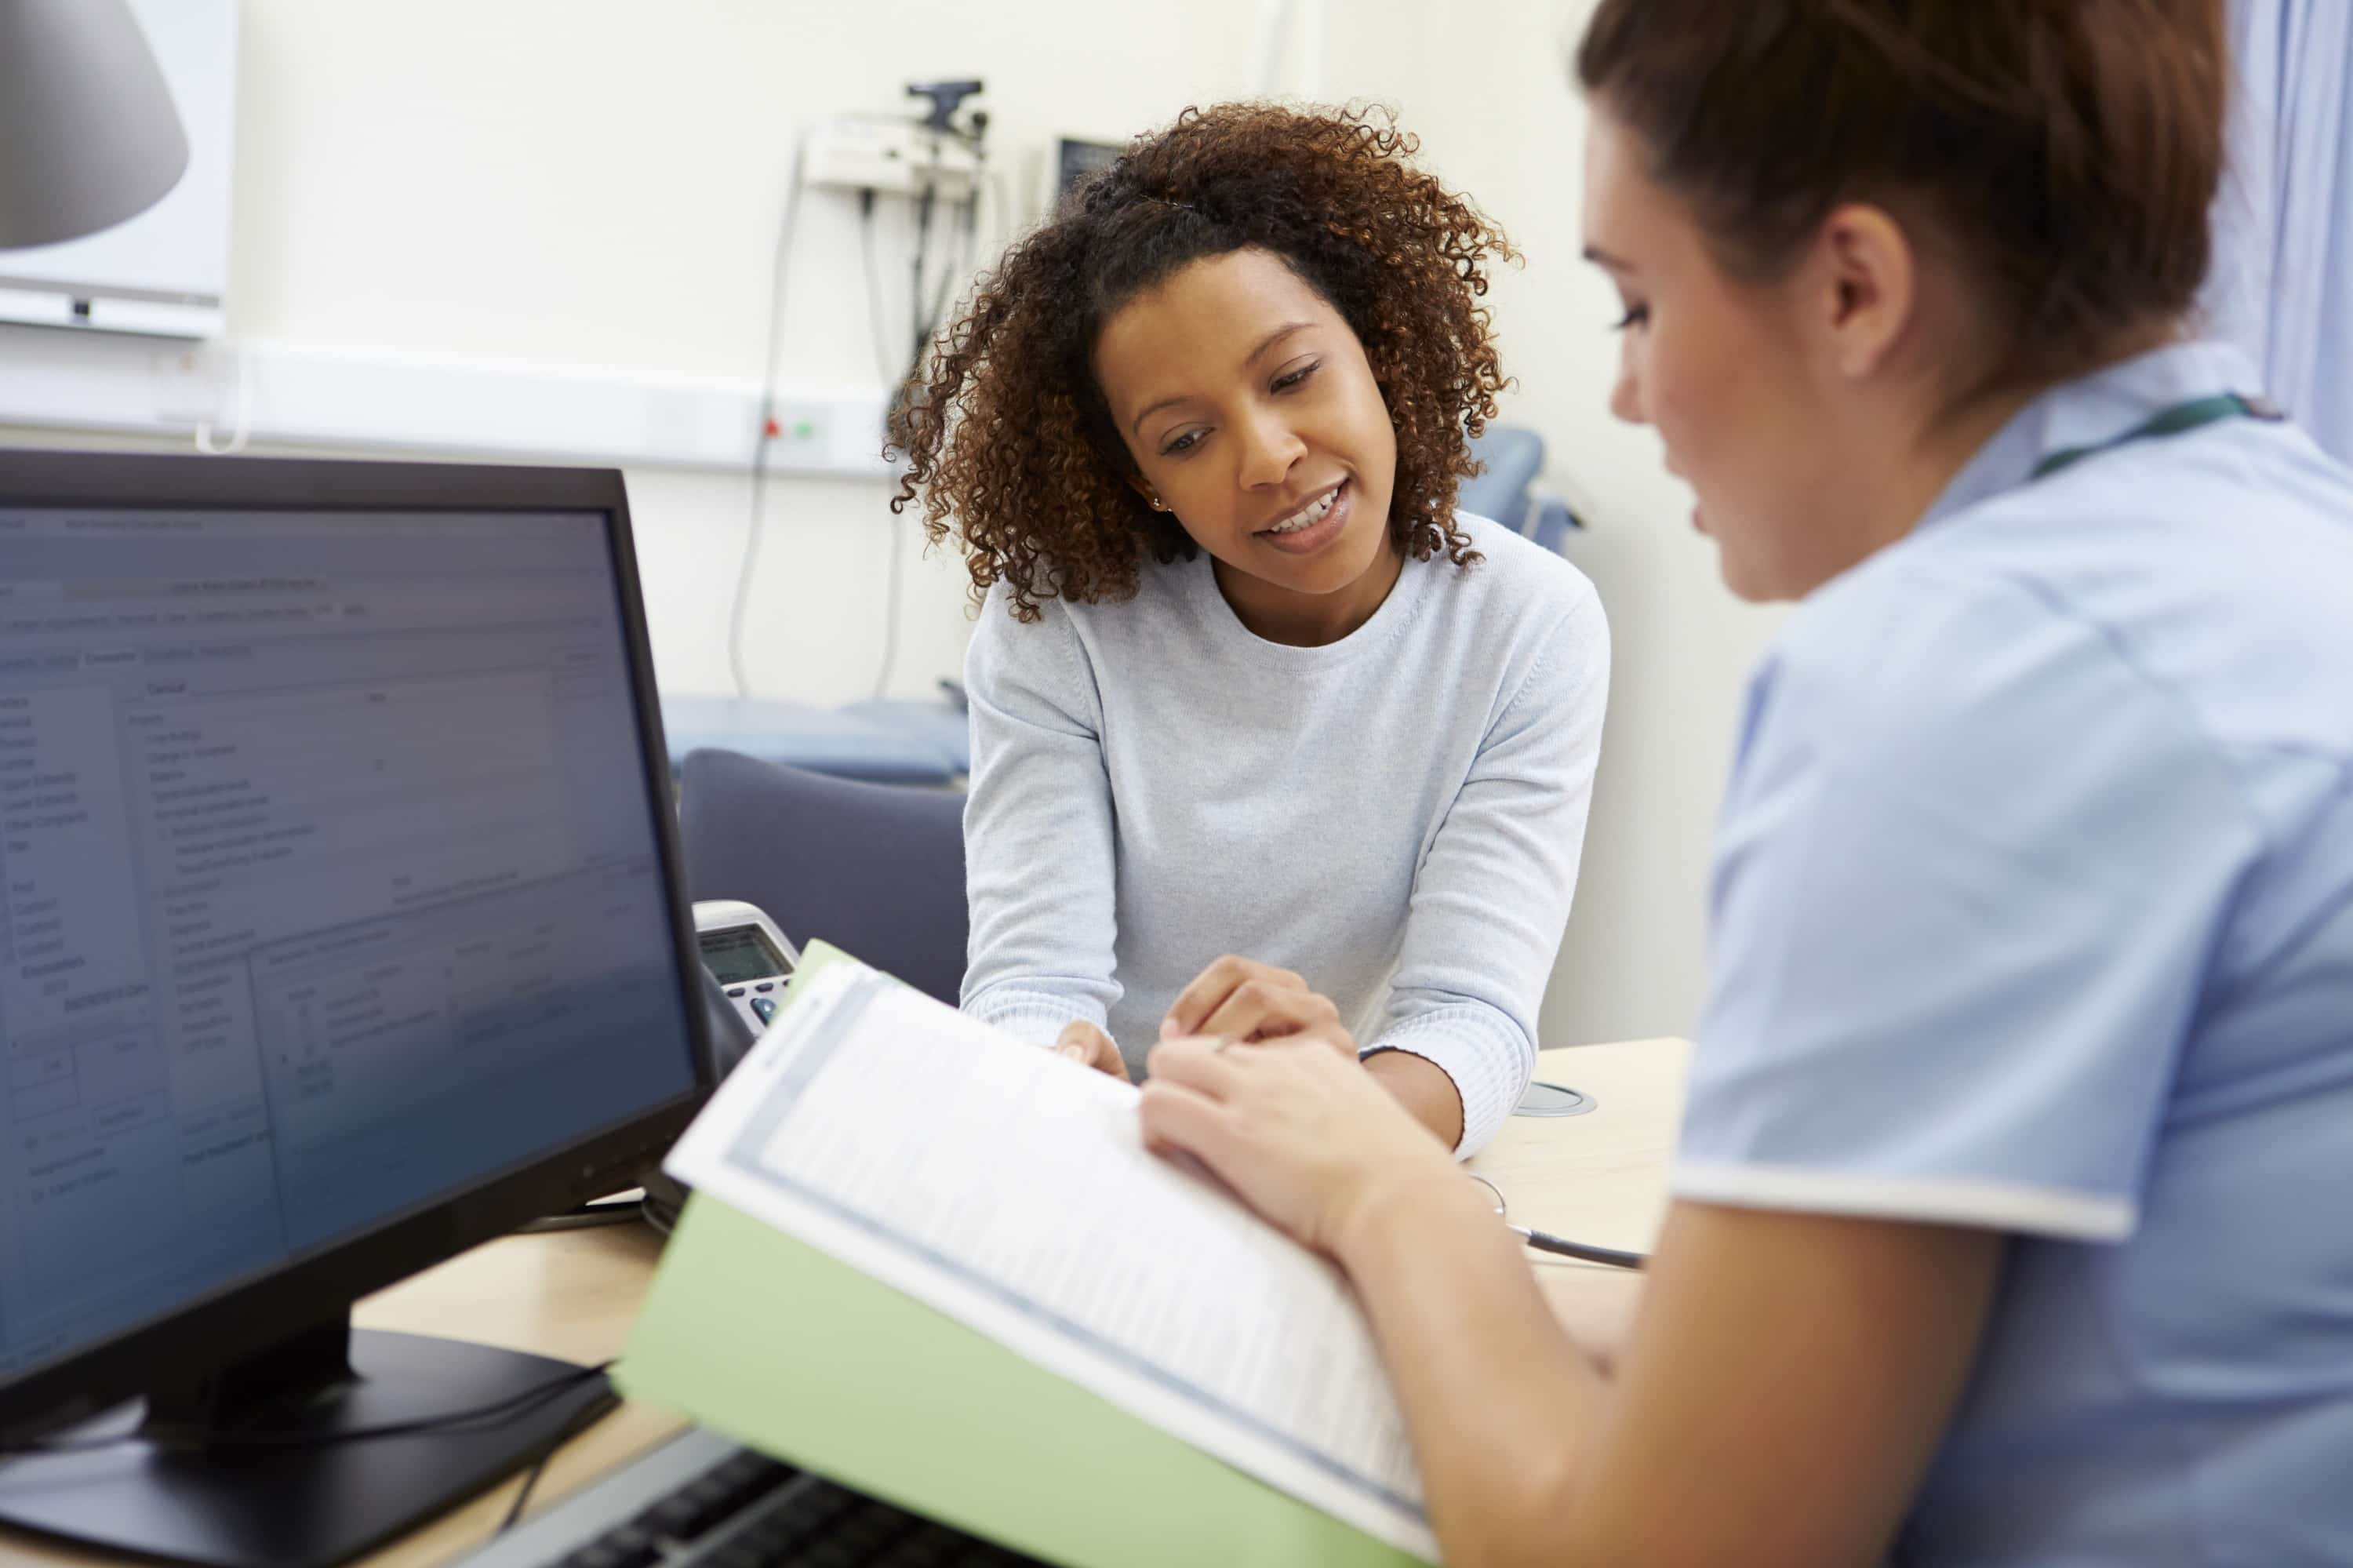 Health Informatics program illustration showing a clinician Discussing Test Results With Patient In Offic